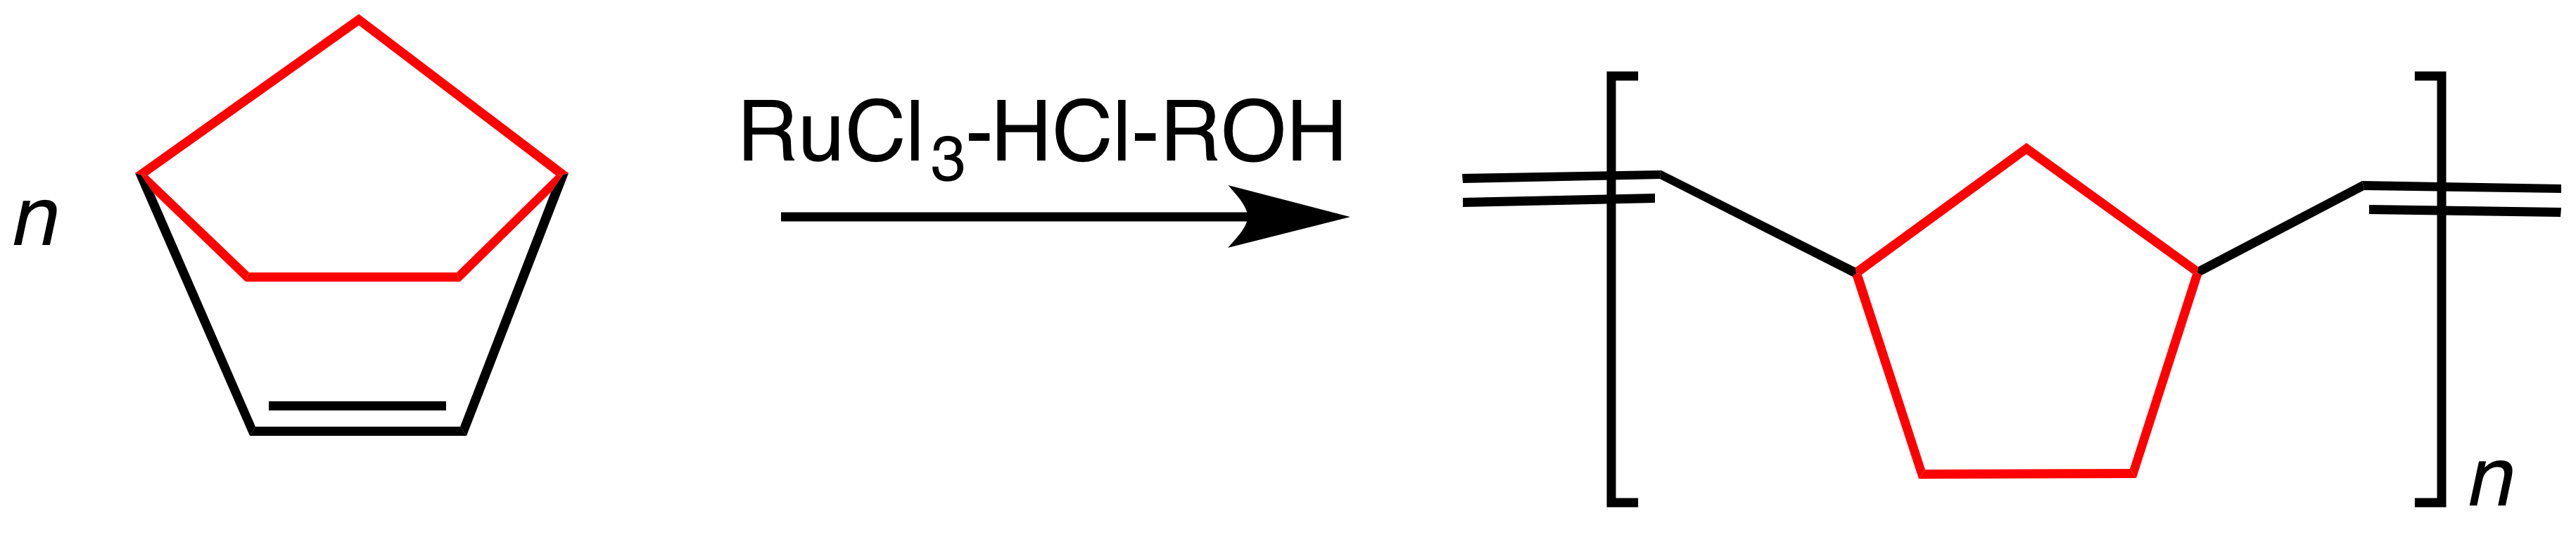 olefin metathesis polymerization Olefin metathesis entails the redistribution of fragments of alkenes by the scission and industrial applications of olefin metathesis polymerization.